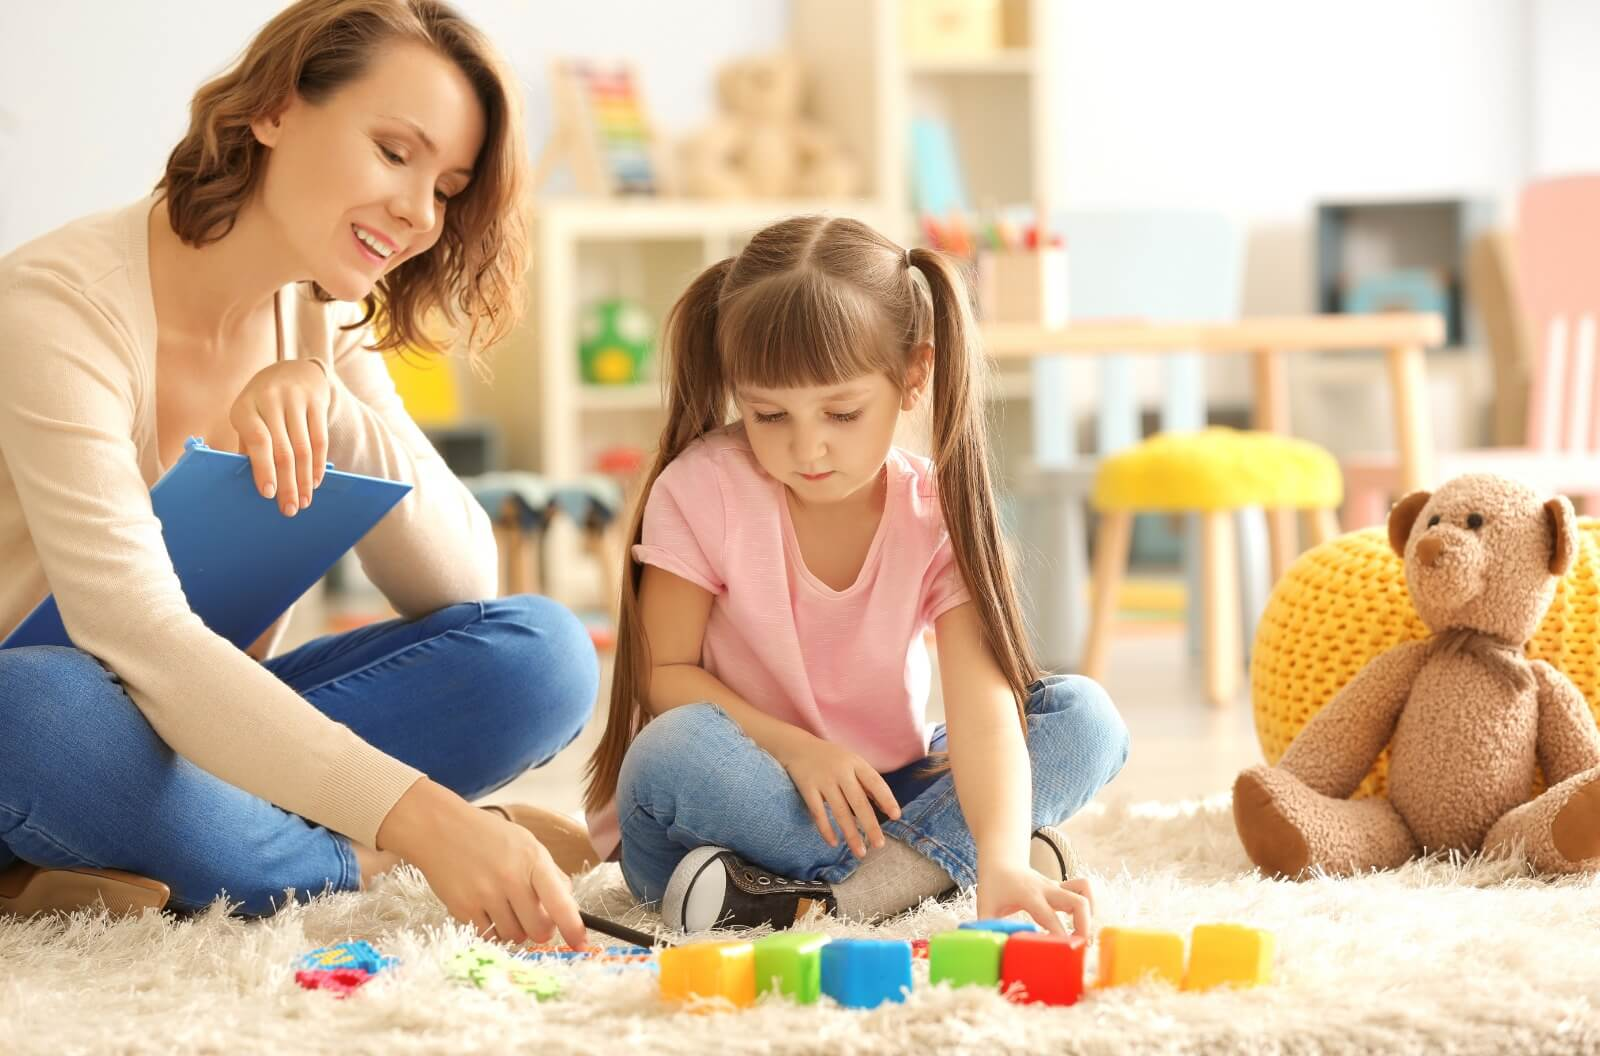 PlayTherapy compasscounseling